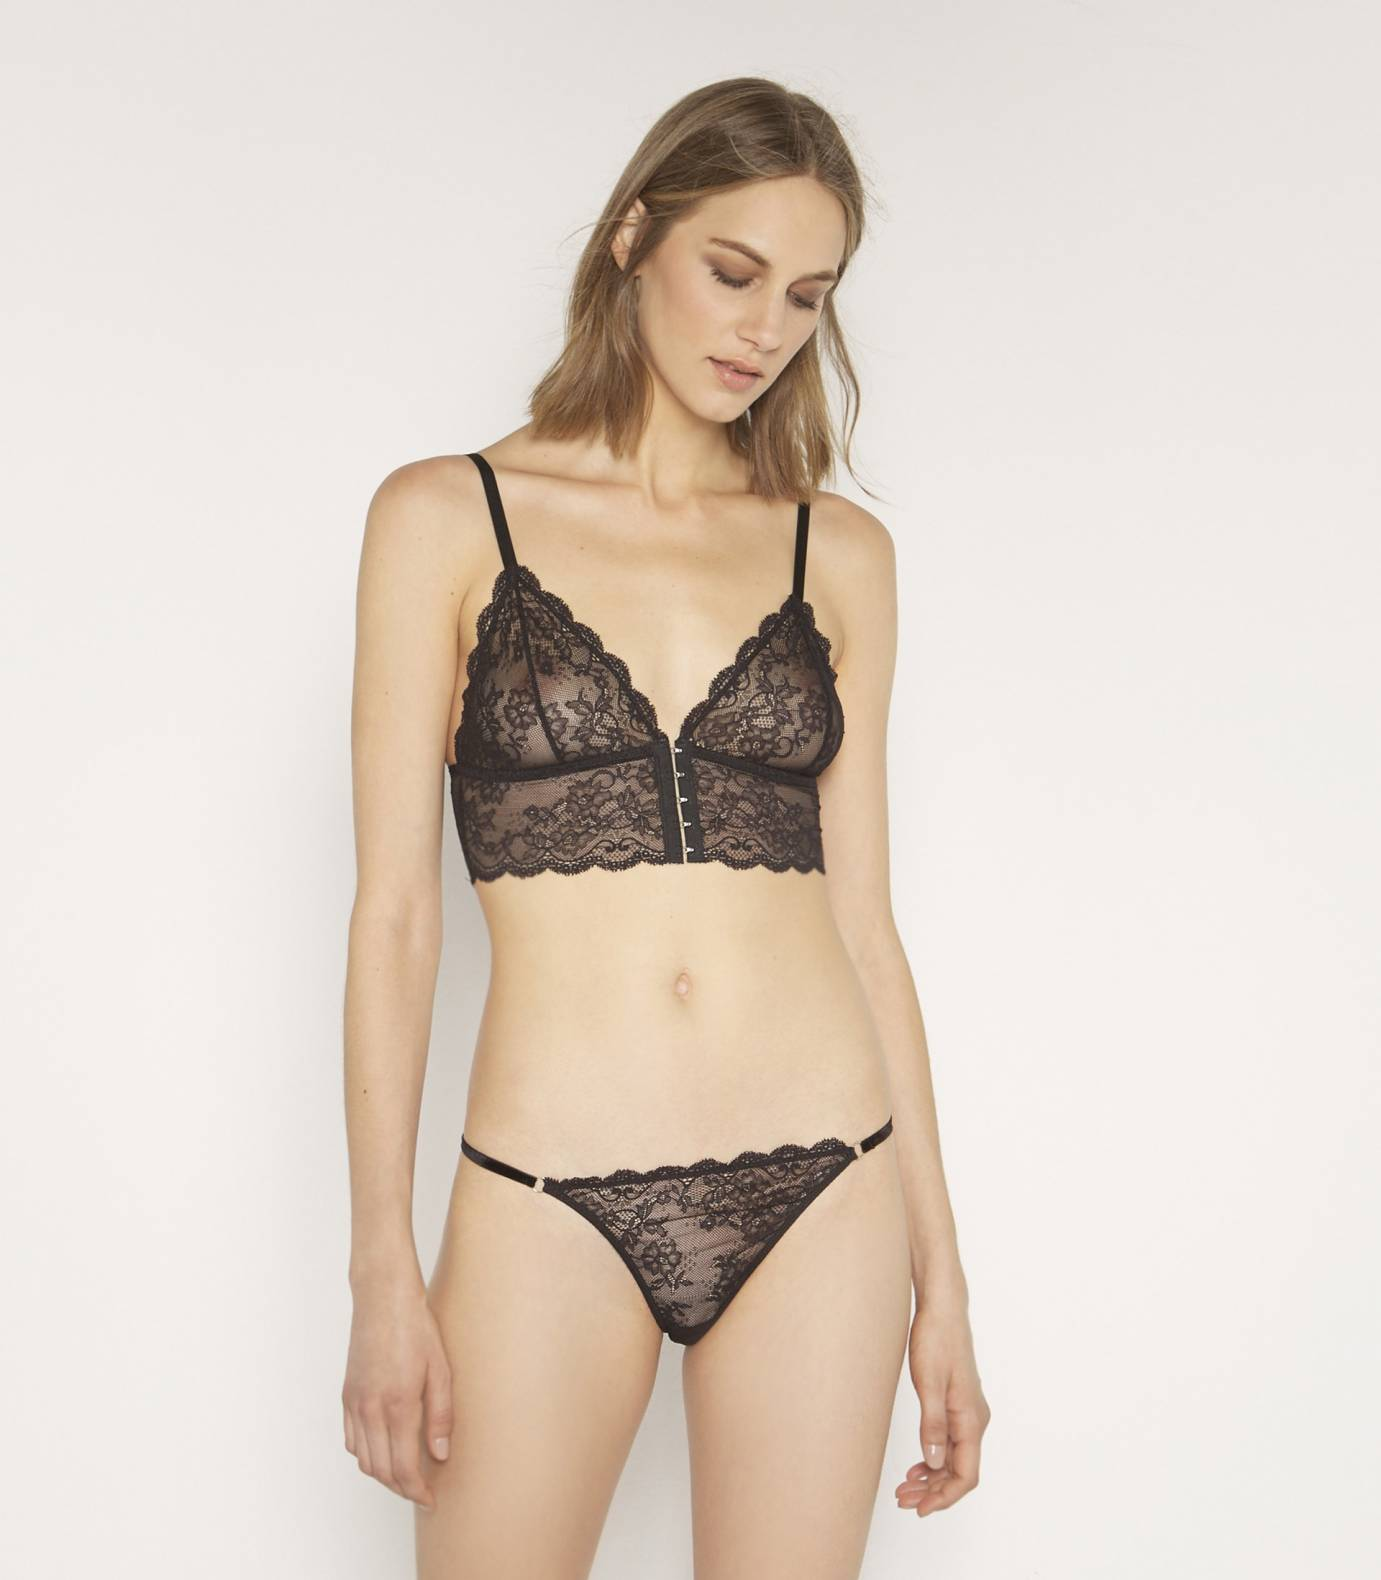 G-string lace knickers